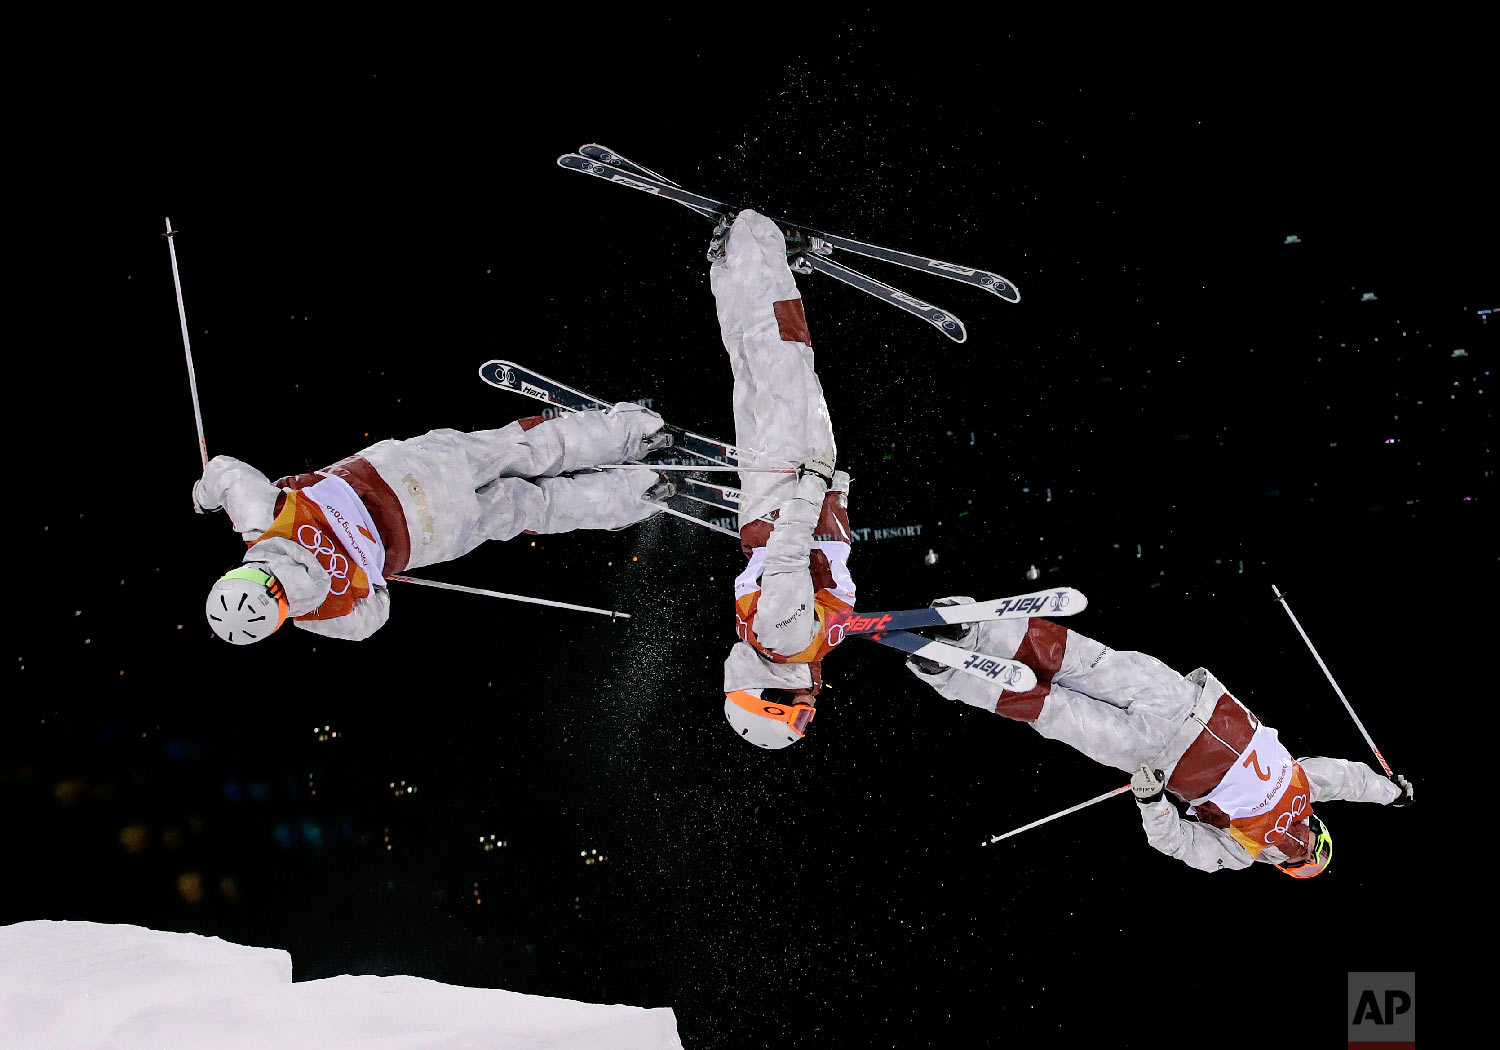 In this multiple exposure photo, AndiNaude, of Canada, jumps during the women's moguls finals at Phoenix Snow Park at the 2018 Winter Olympics in Pyeongchang, South Korea, Sunday, Feb. 11, 2018. (AP Photo/Gregory Bull)